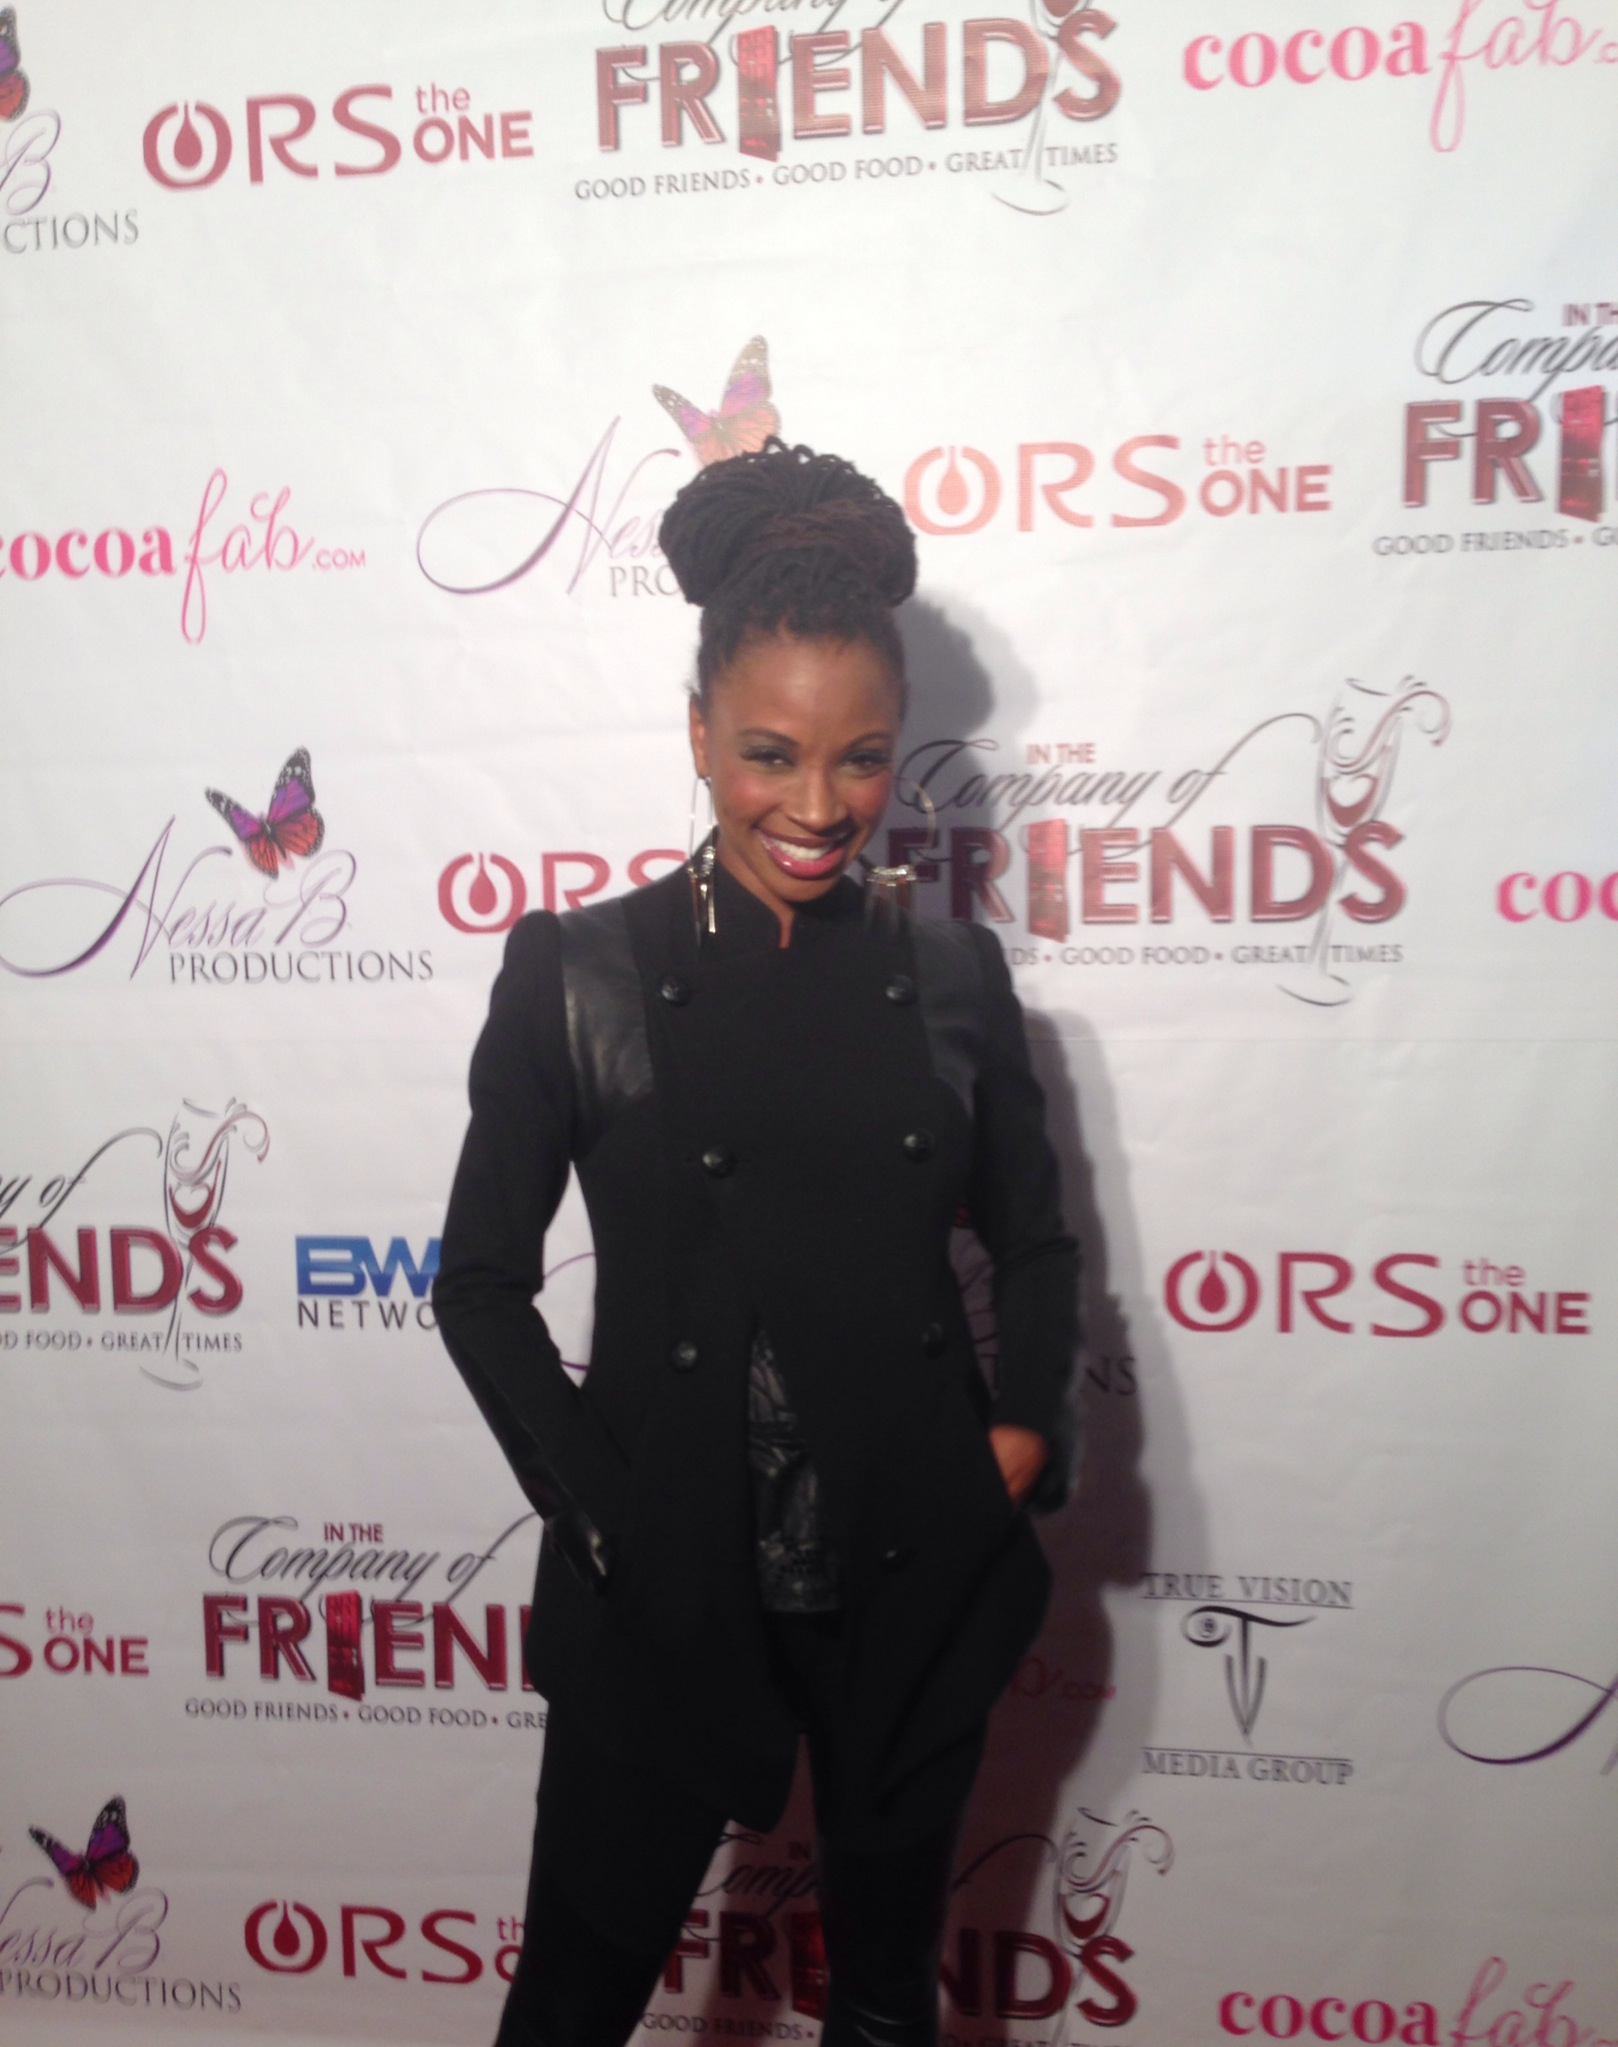 The Beautiful Shanola Hampton at The In The Company Of Friends Premiere